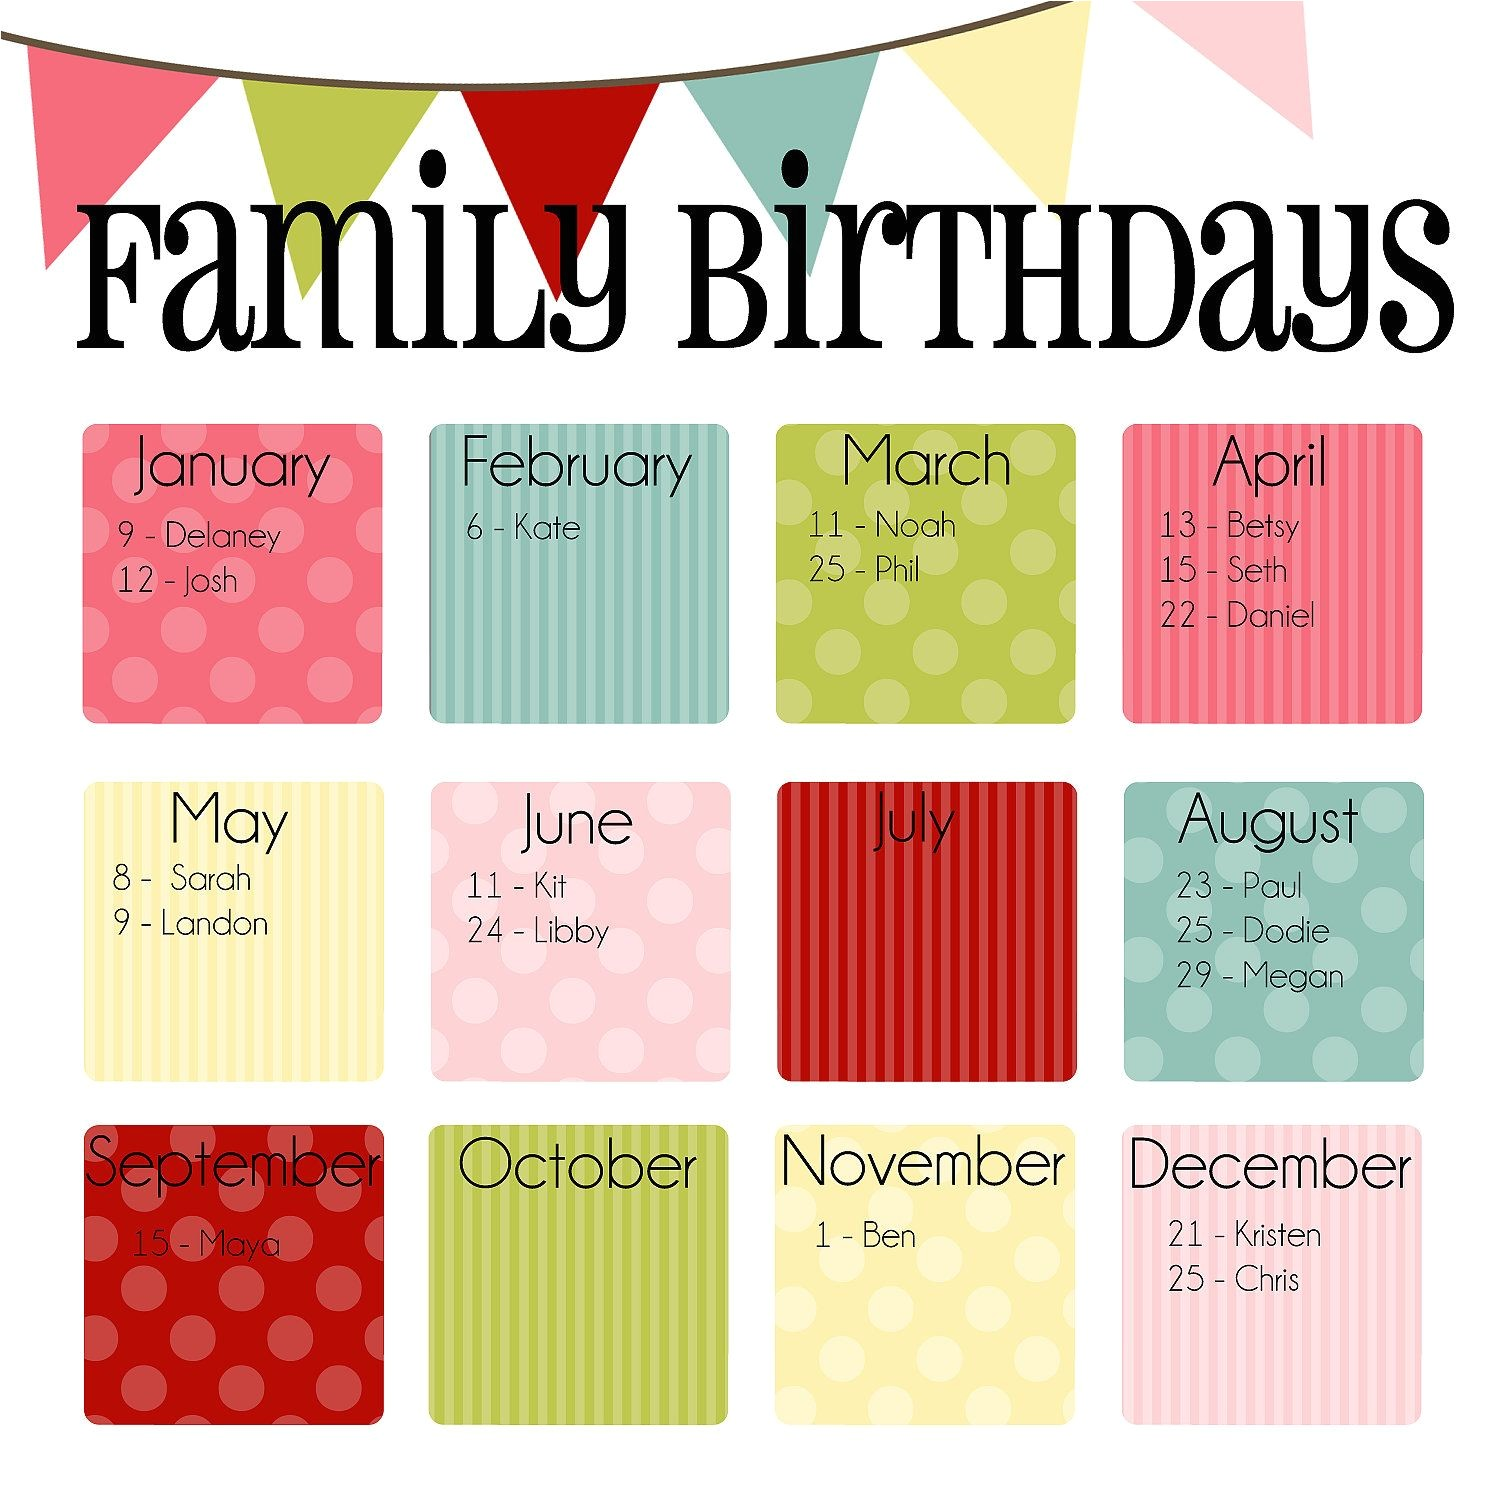 Birthday Calendars Templates Free Family Birthday Calendar Digital Copy You Print In Quot Ice